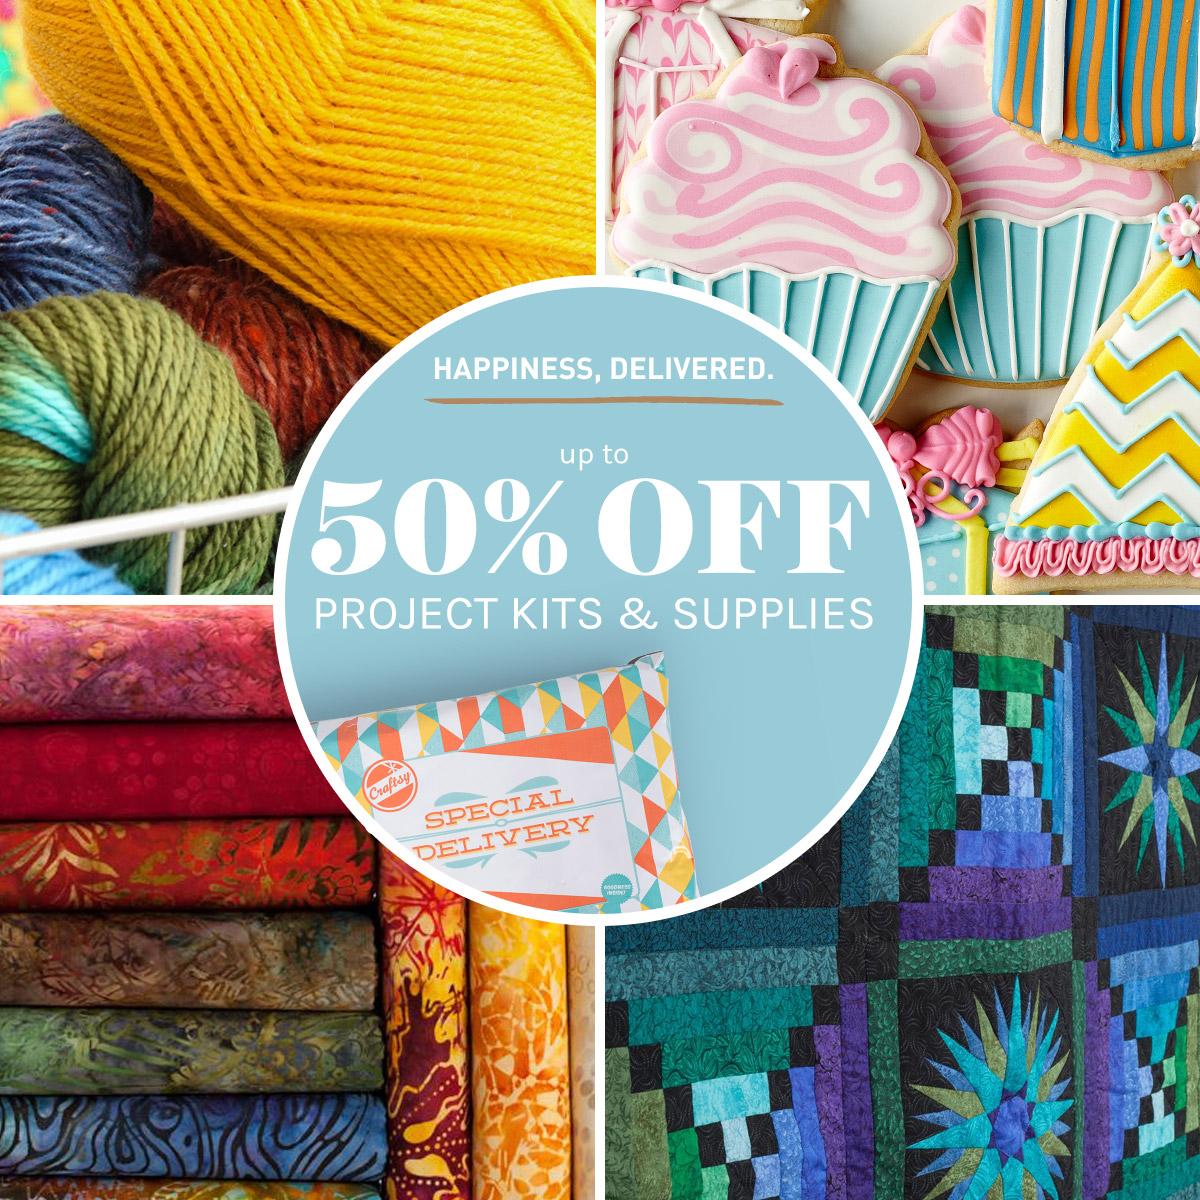 Craftsy is having a supplies and kits flash sale this weekend! Dates 4/29 @12:01am MDT  -through-